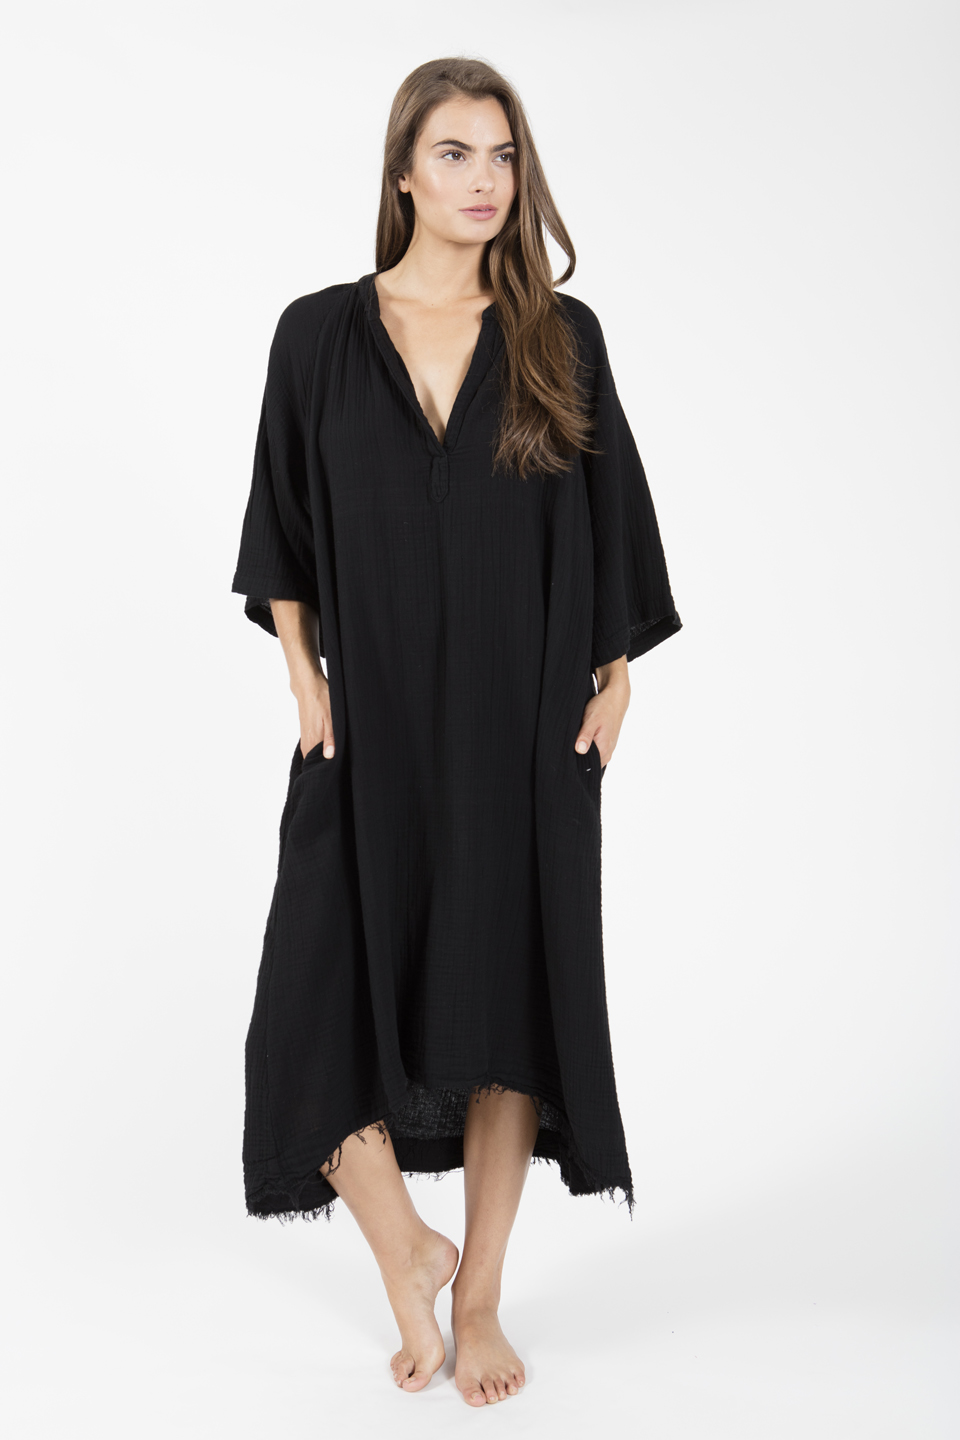 Tangier long sleeve caftan - black